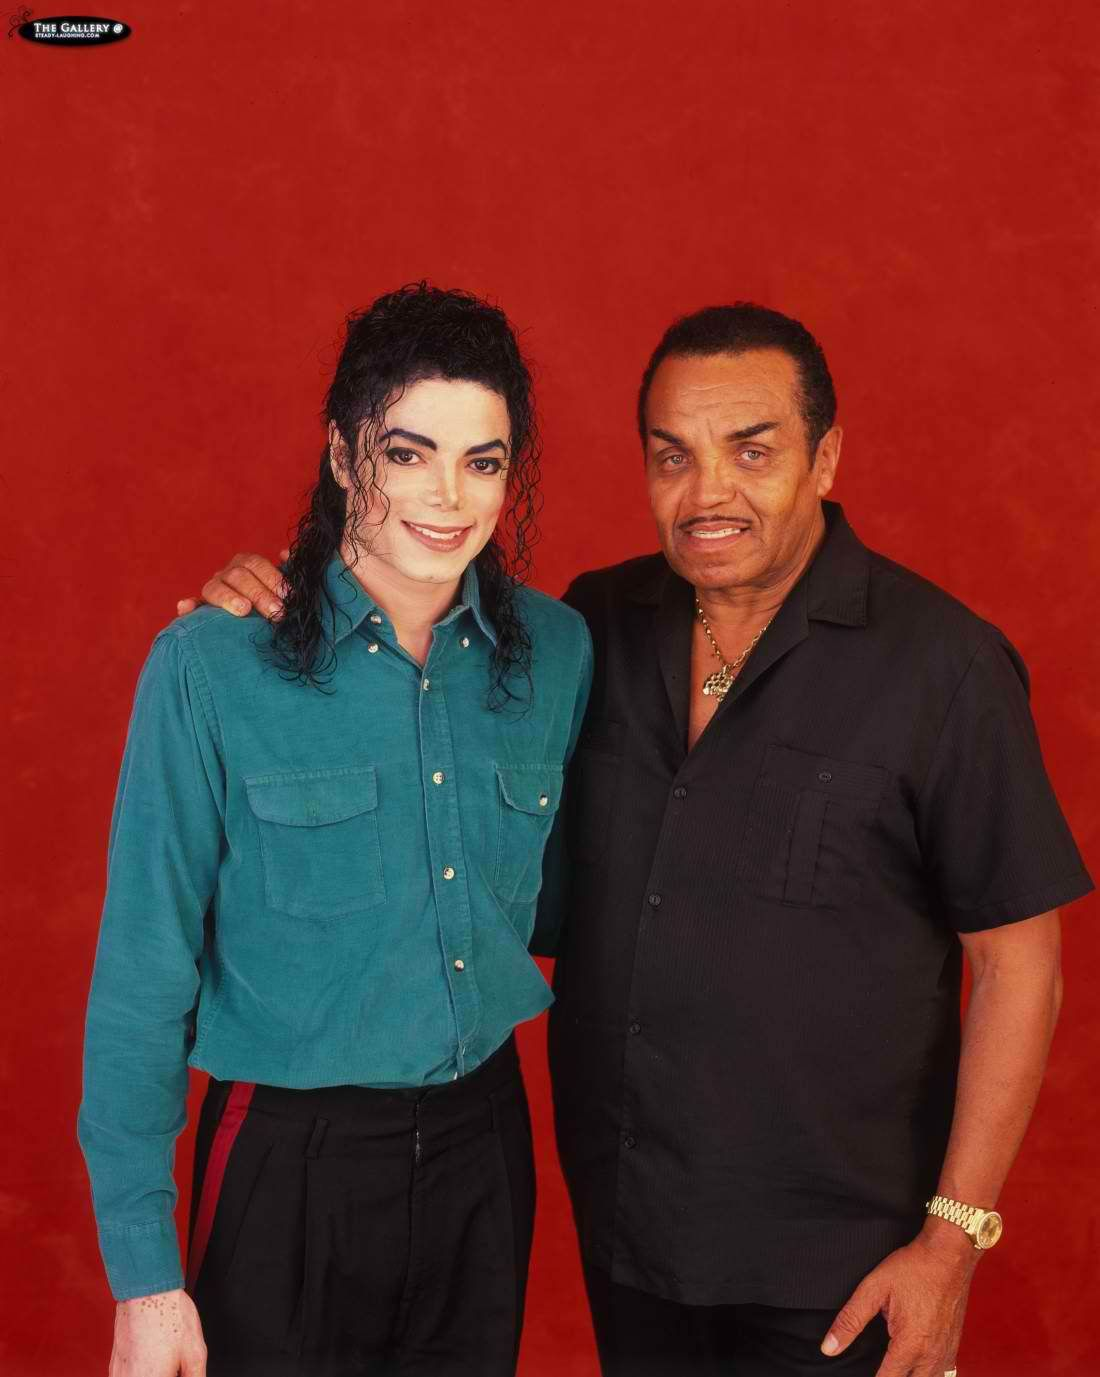 Michael Jackson and his father during the History era.